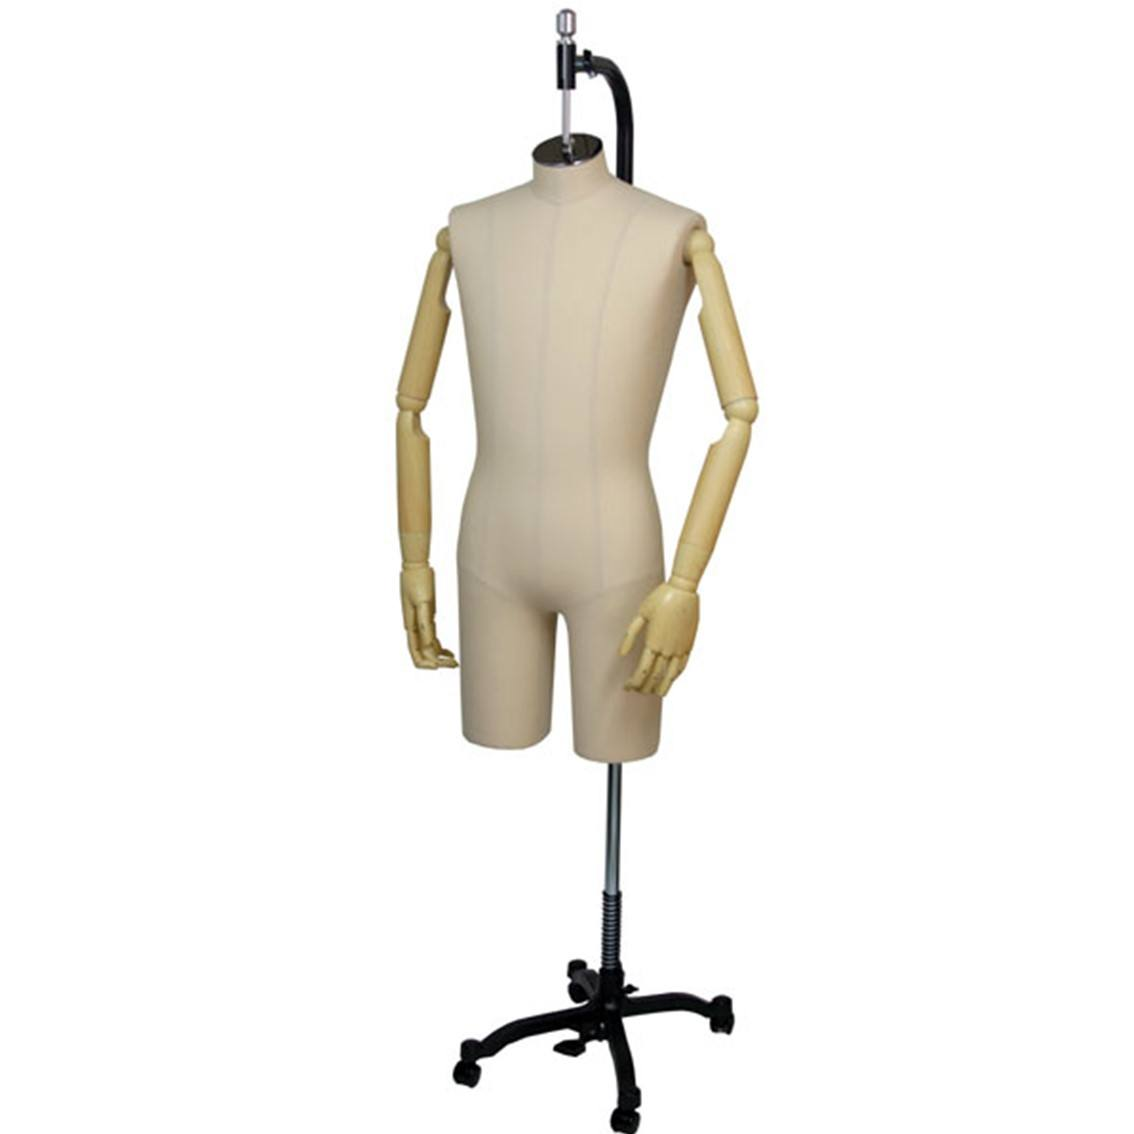 Designer Bust dressmaker, Tailor man mannequin with rack